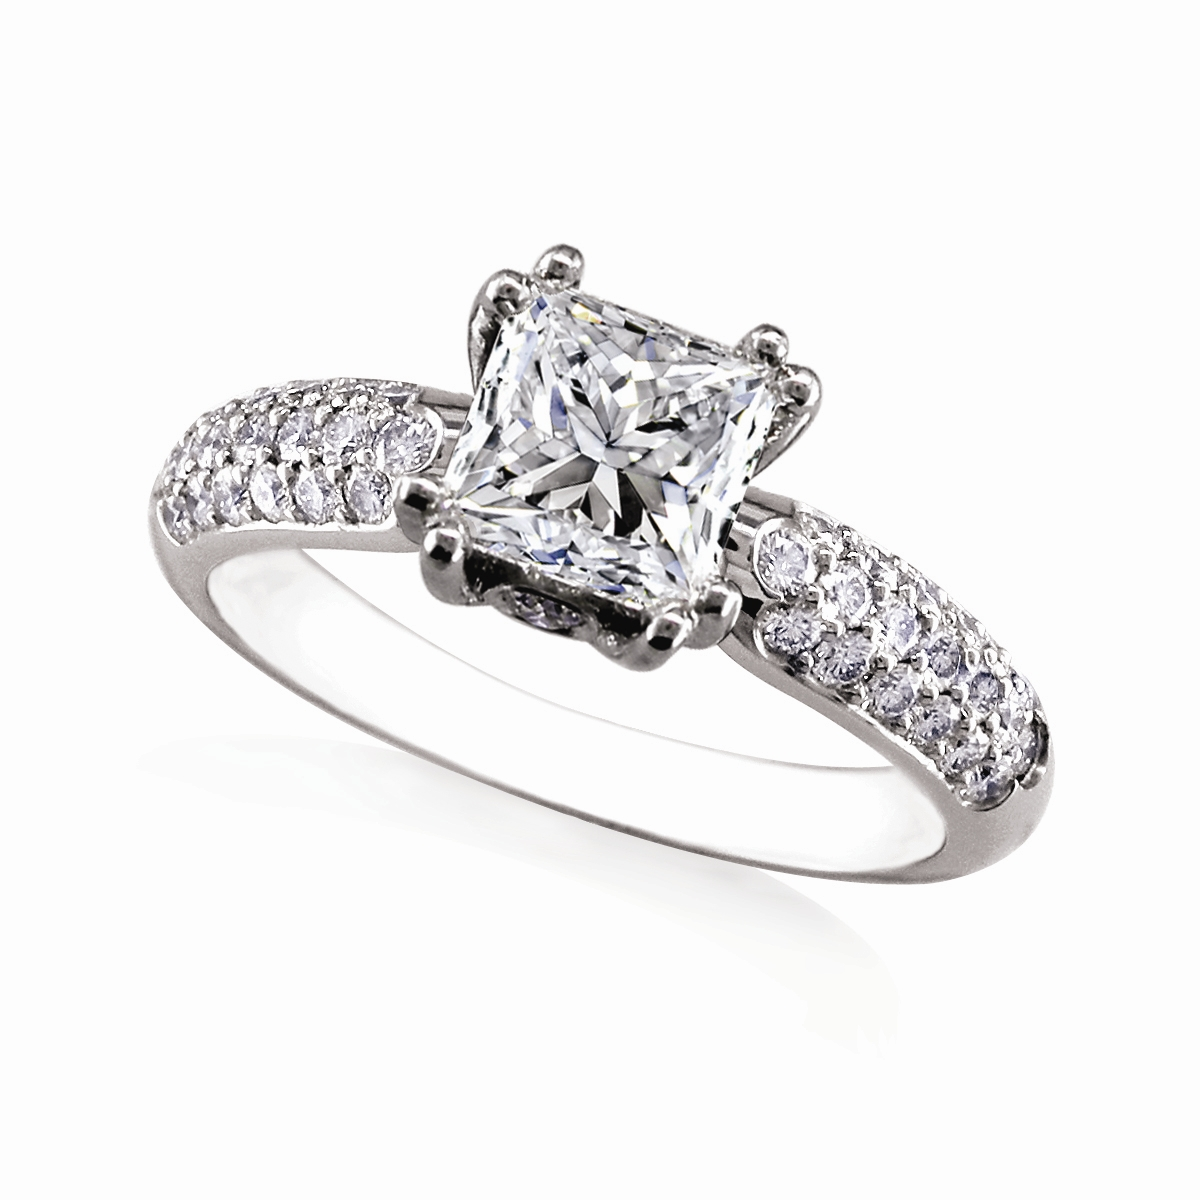 Whiteflash-rhapsody-pave-diamond-engagement-ring.original